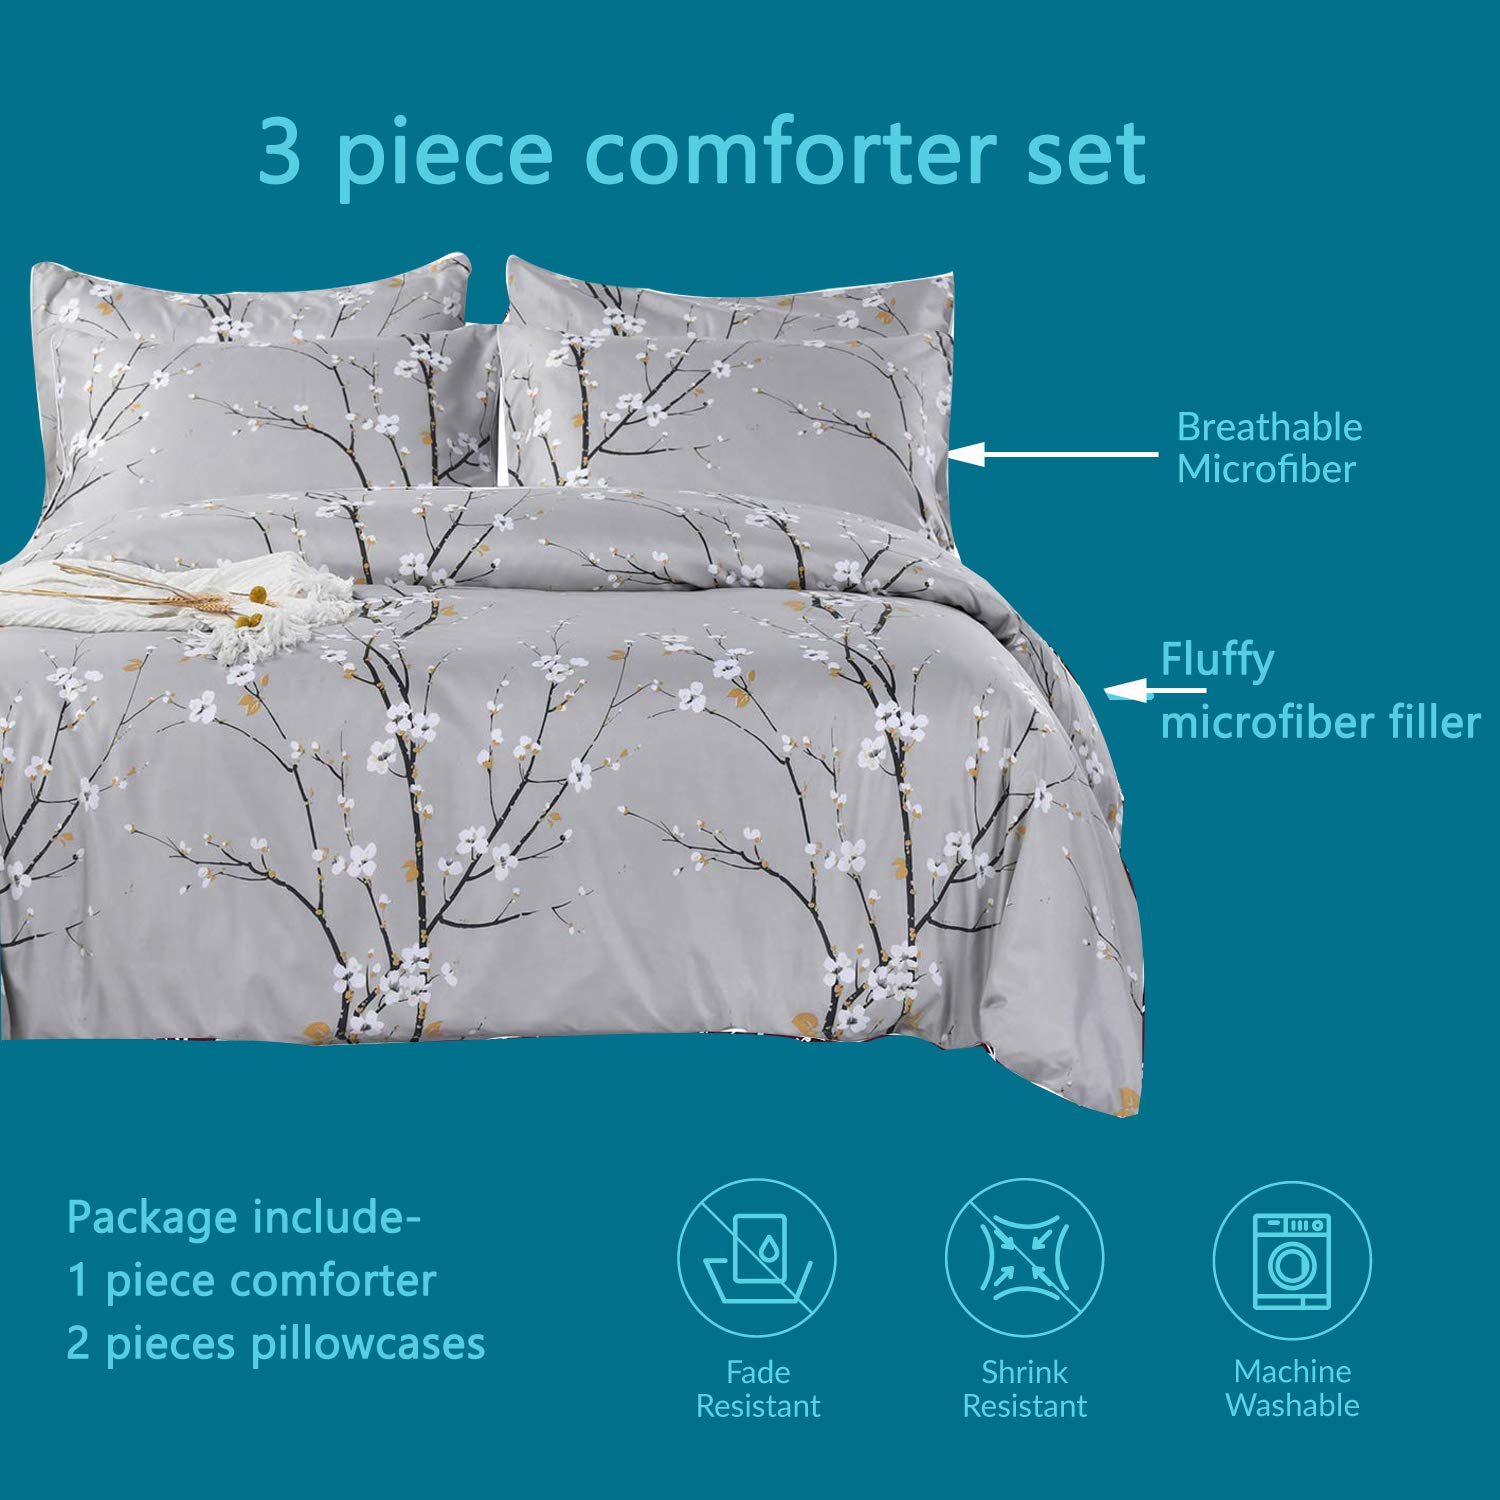 SexyTown Lightweight Black Floral Comforter Set Queen Ultra Soft Bedding for Girls//Women Reversible Flower Printed Colorful Comforter Machine Washable